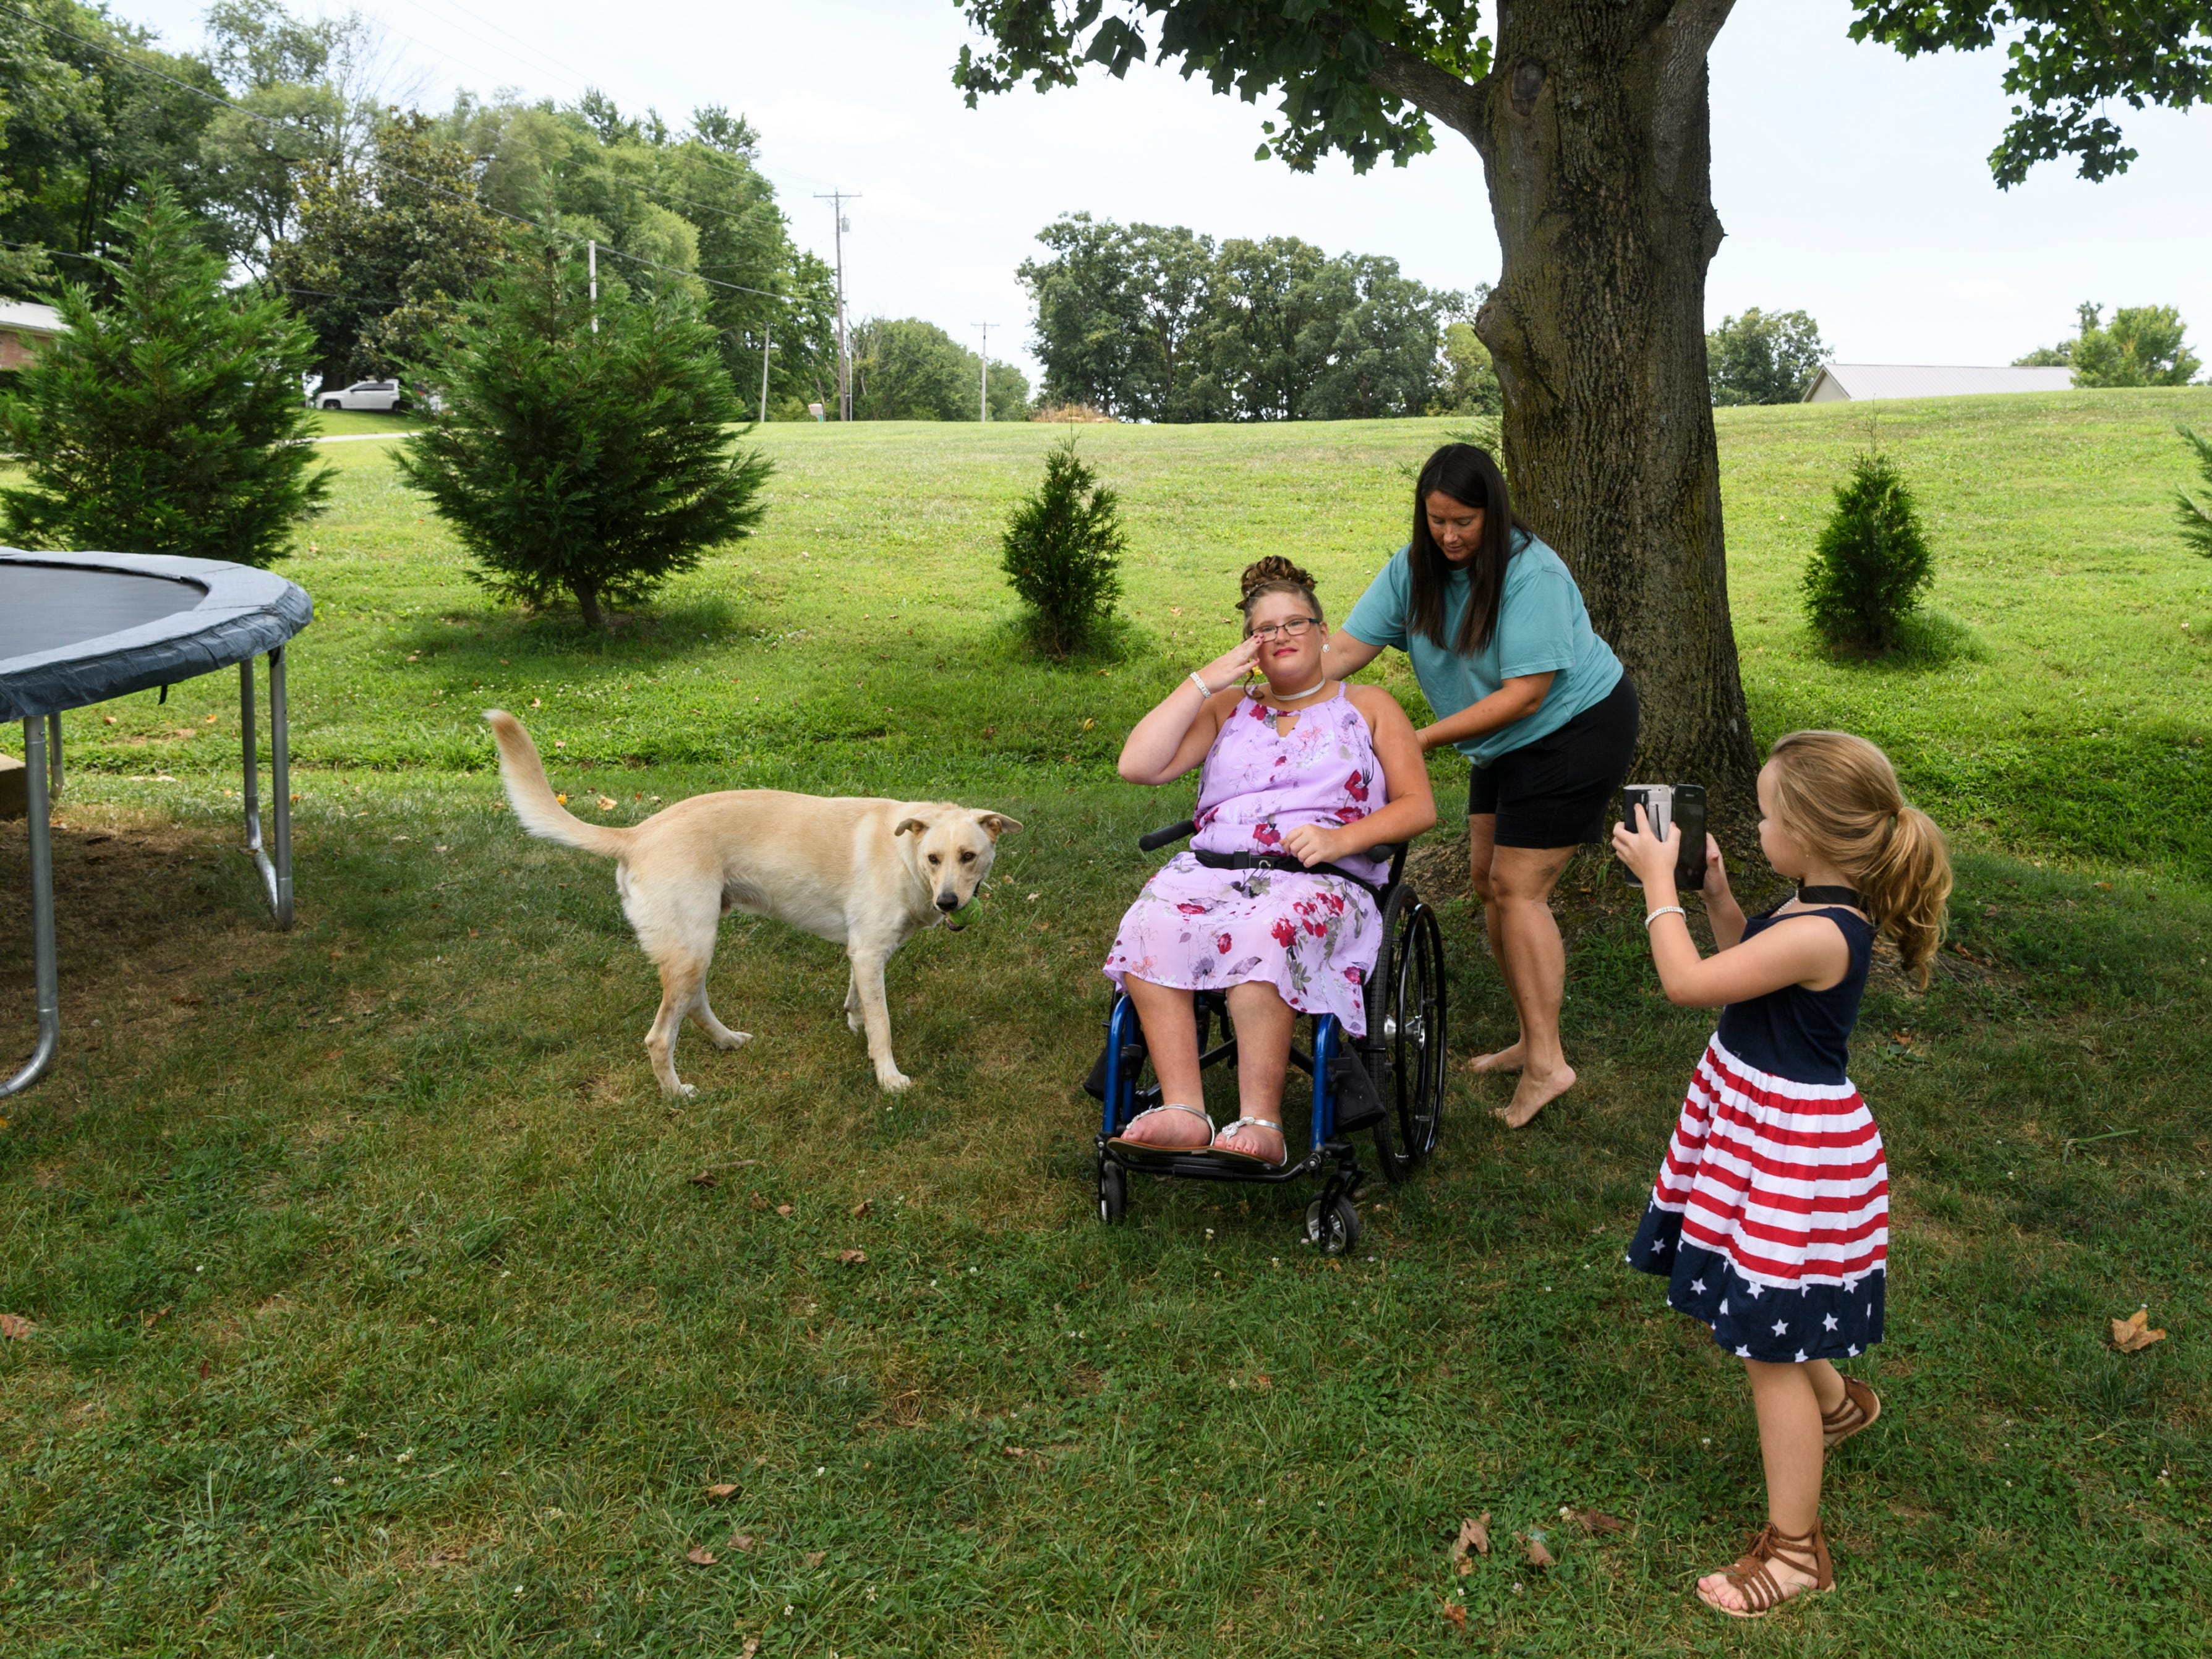 Peggy Shanks positions her daughter Ali Shanks under a shady tree in their yard before taking pictures of her as six-year-old Ella Swanson begins snapping cell phone photos of Ali and Jax, the dog, at their home on the west side of Evansville, Ind., Saturday afternoon, July 28, 2018. Everyone took pictures of Ali in her interview dress before Ali and Peggy headed to the Salem Church of Darmstadt for her pageant interview.